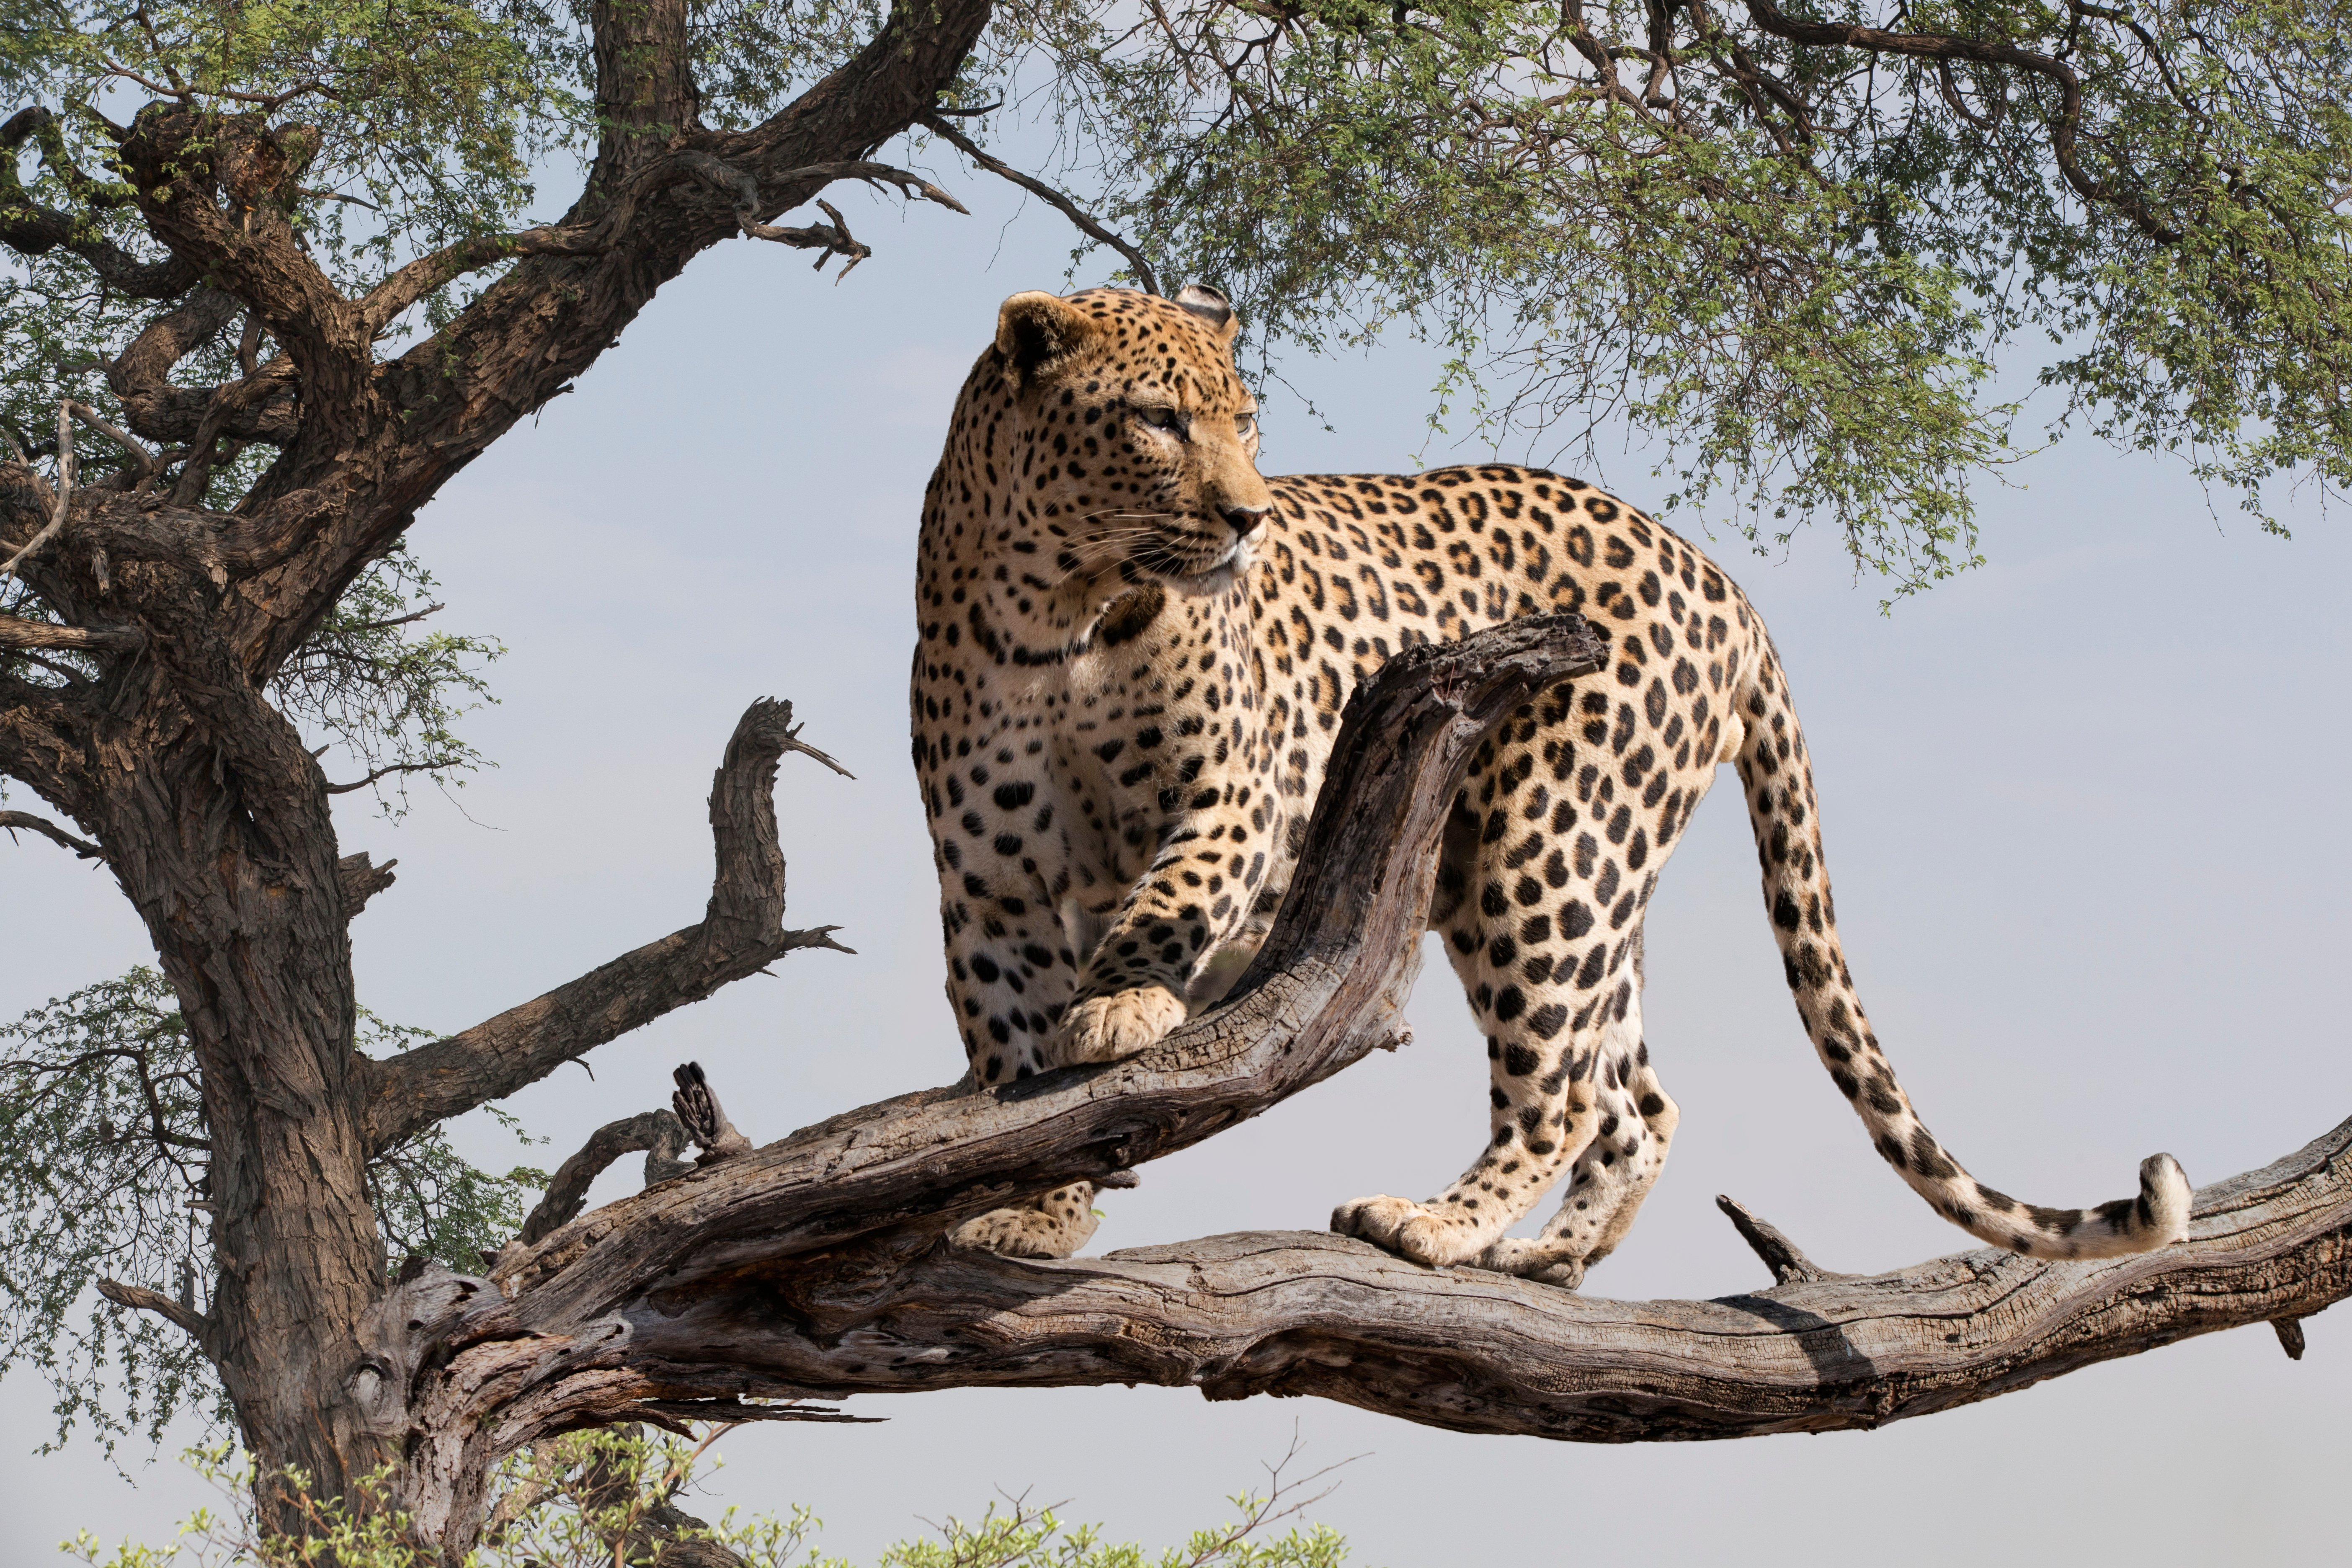 A leopard on tree branch looking out into the distance | Photo: Shutterstock